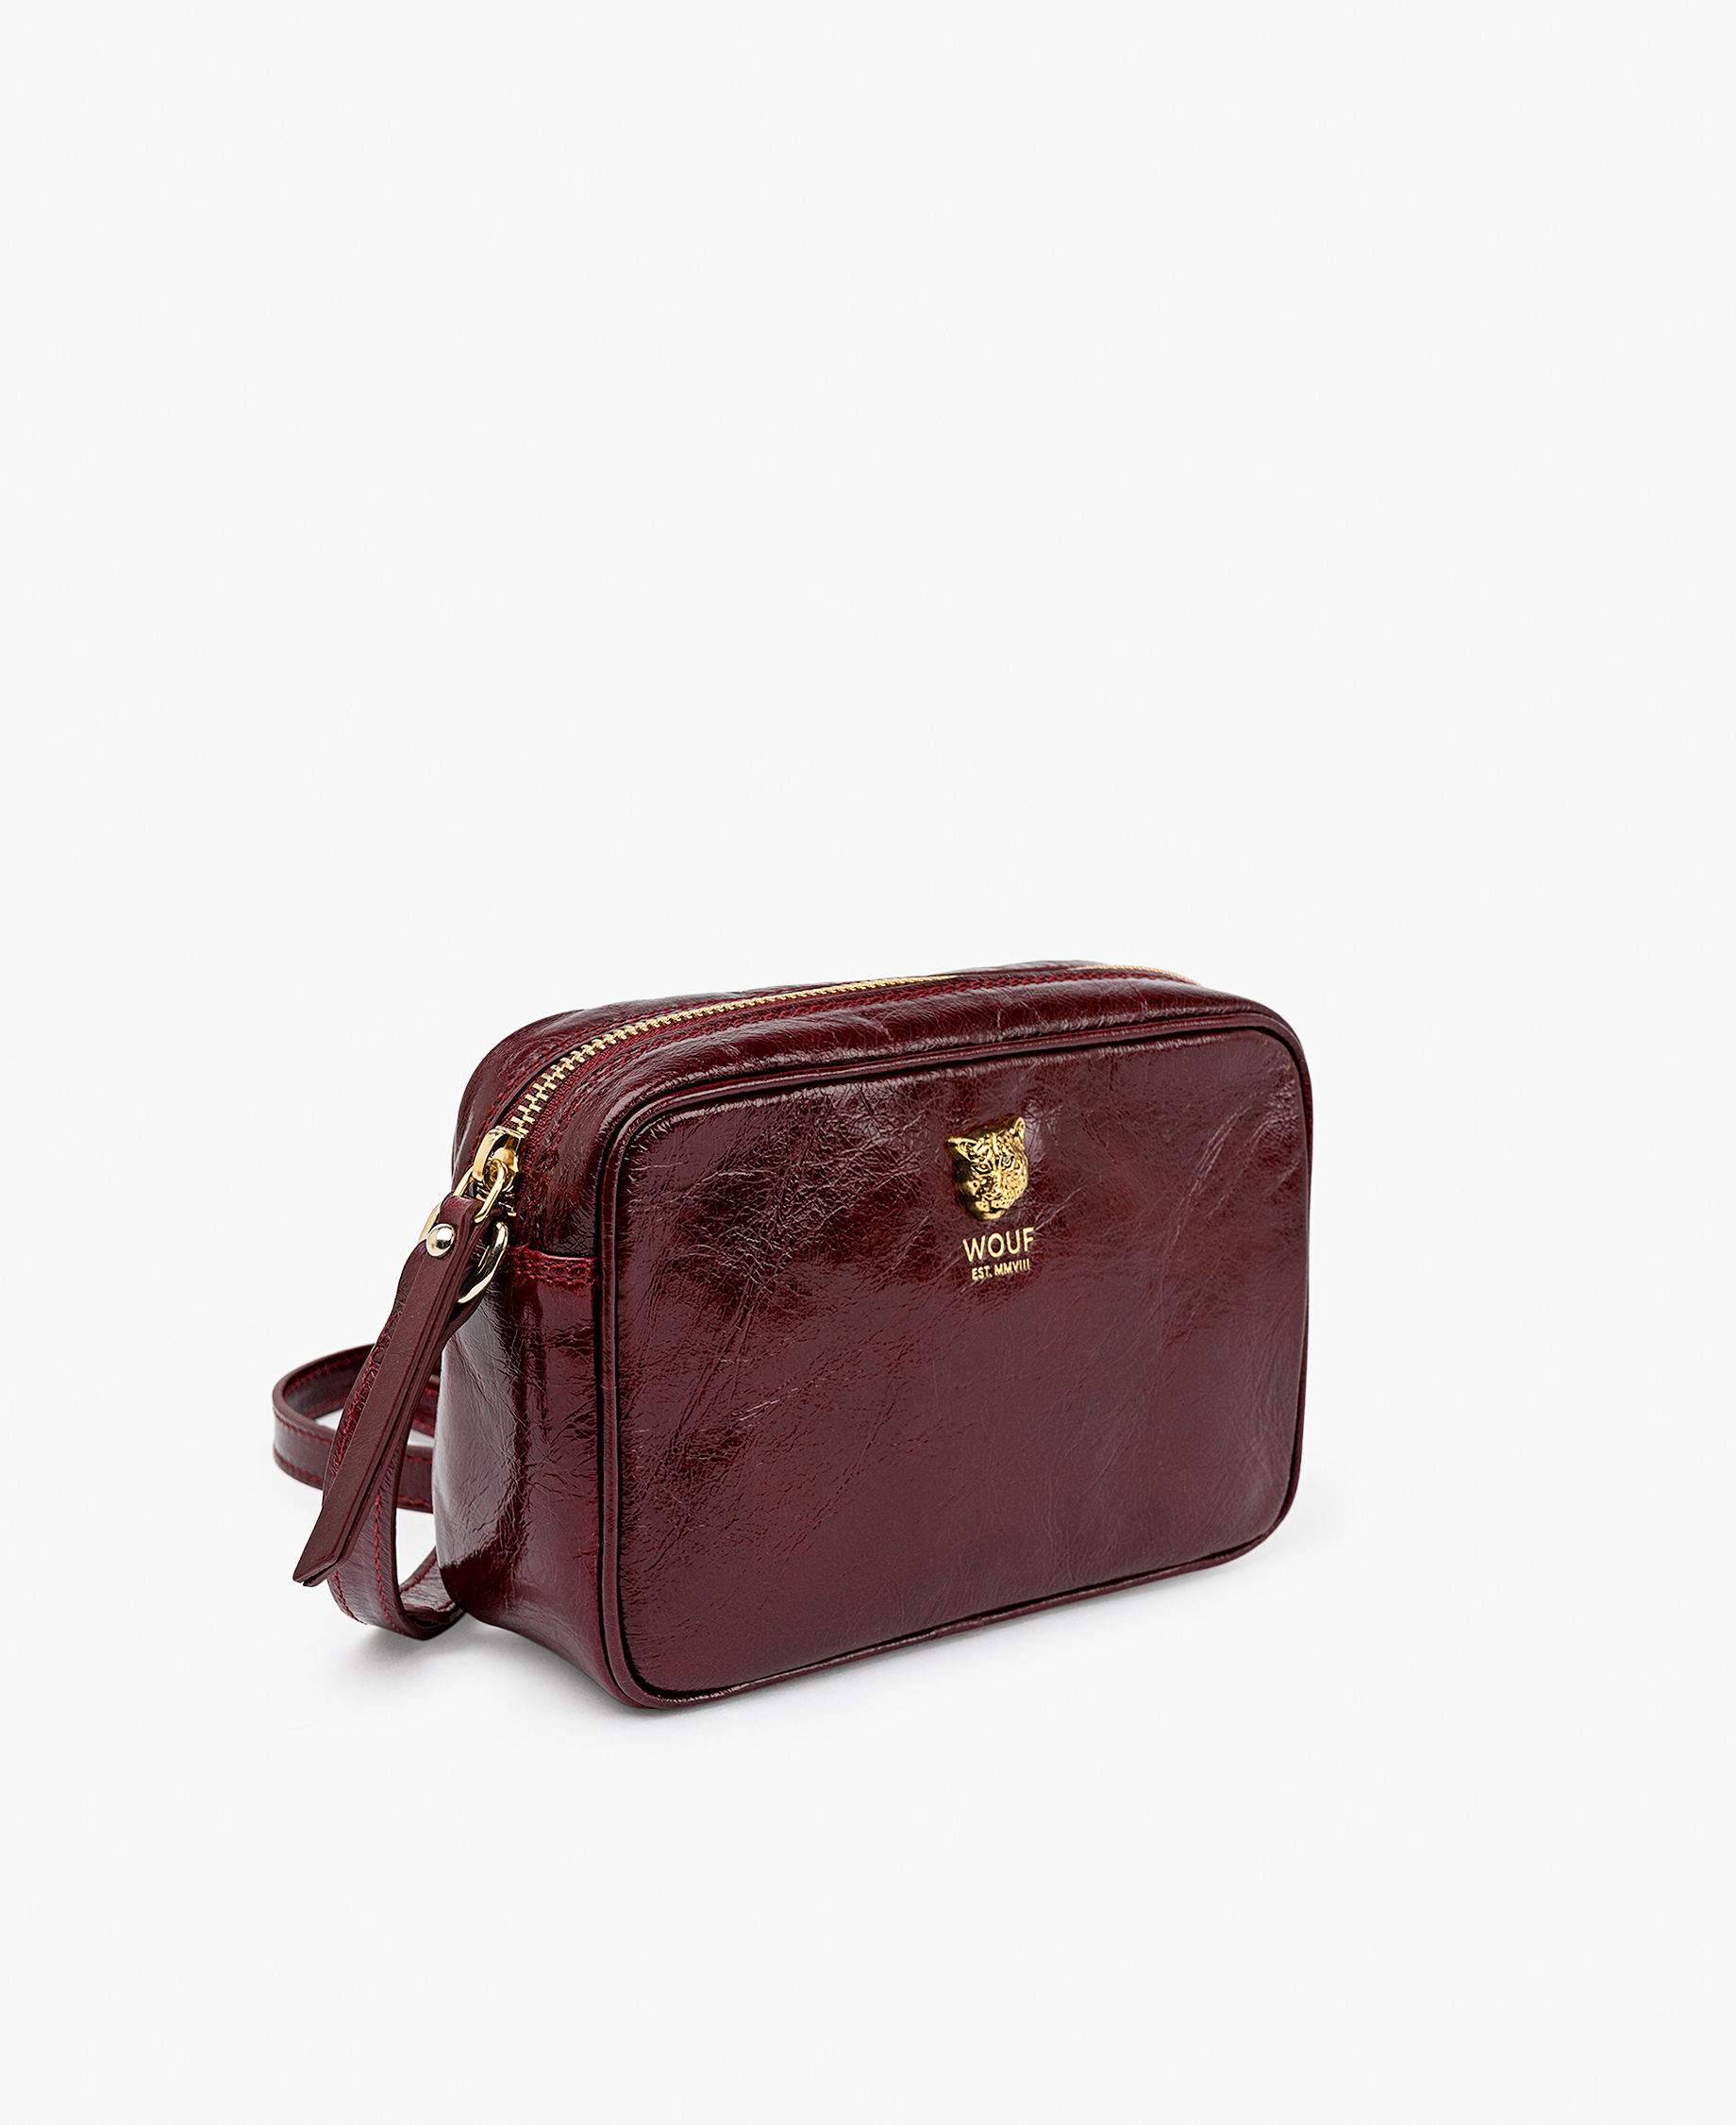 maroon leather camera bag